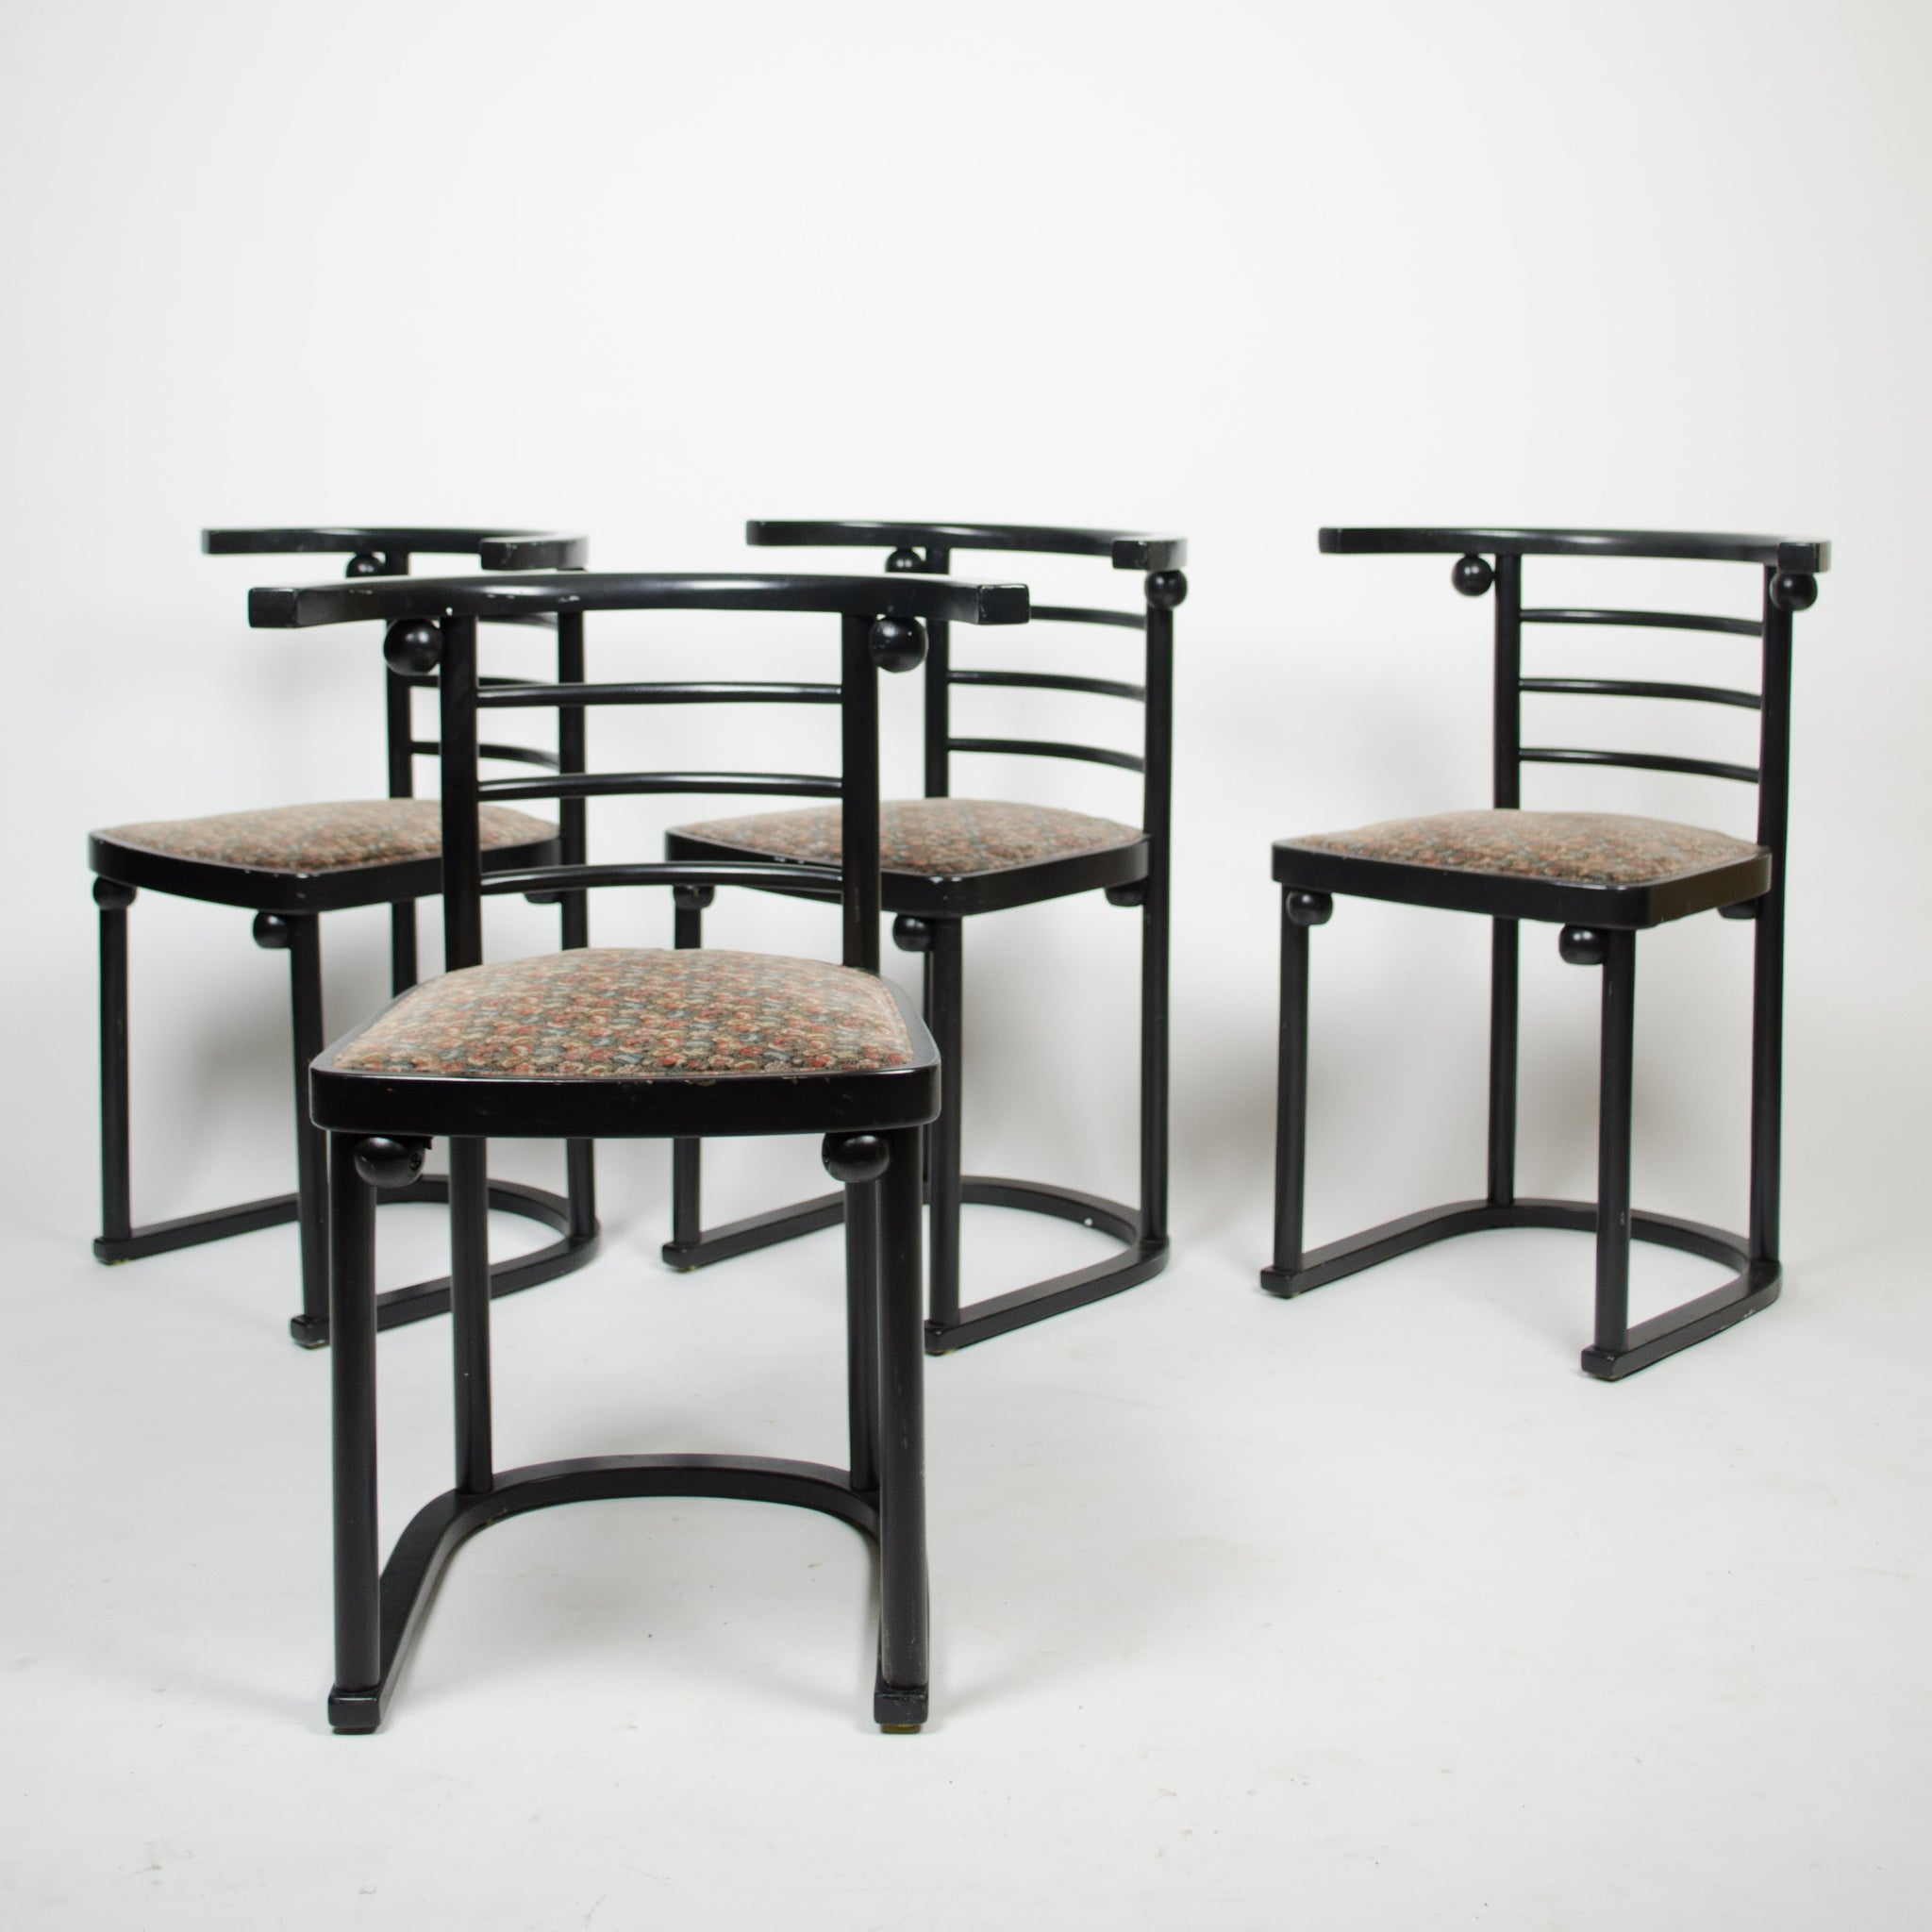 SOLD Josef Hoffman Kohn Die Fledermaus Dining Chairs Set of Four No. 728 Art Deco